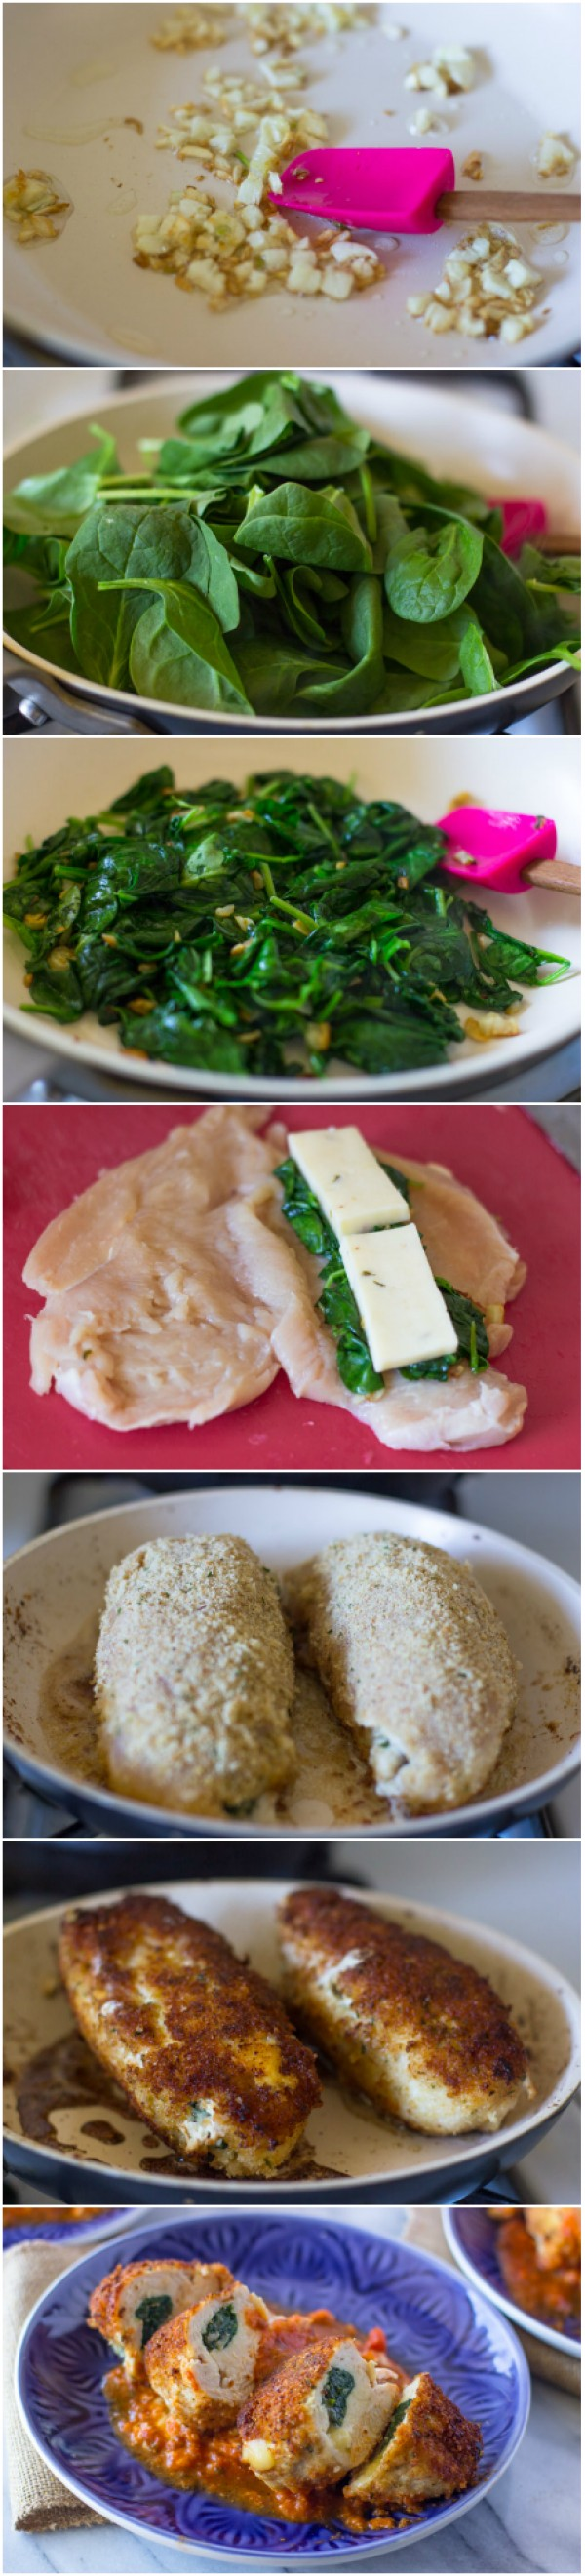 Get the recipe Breaded Chicken Breasts Stuffed with Spinach and Cheese @recipes_to_go